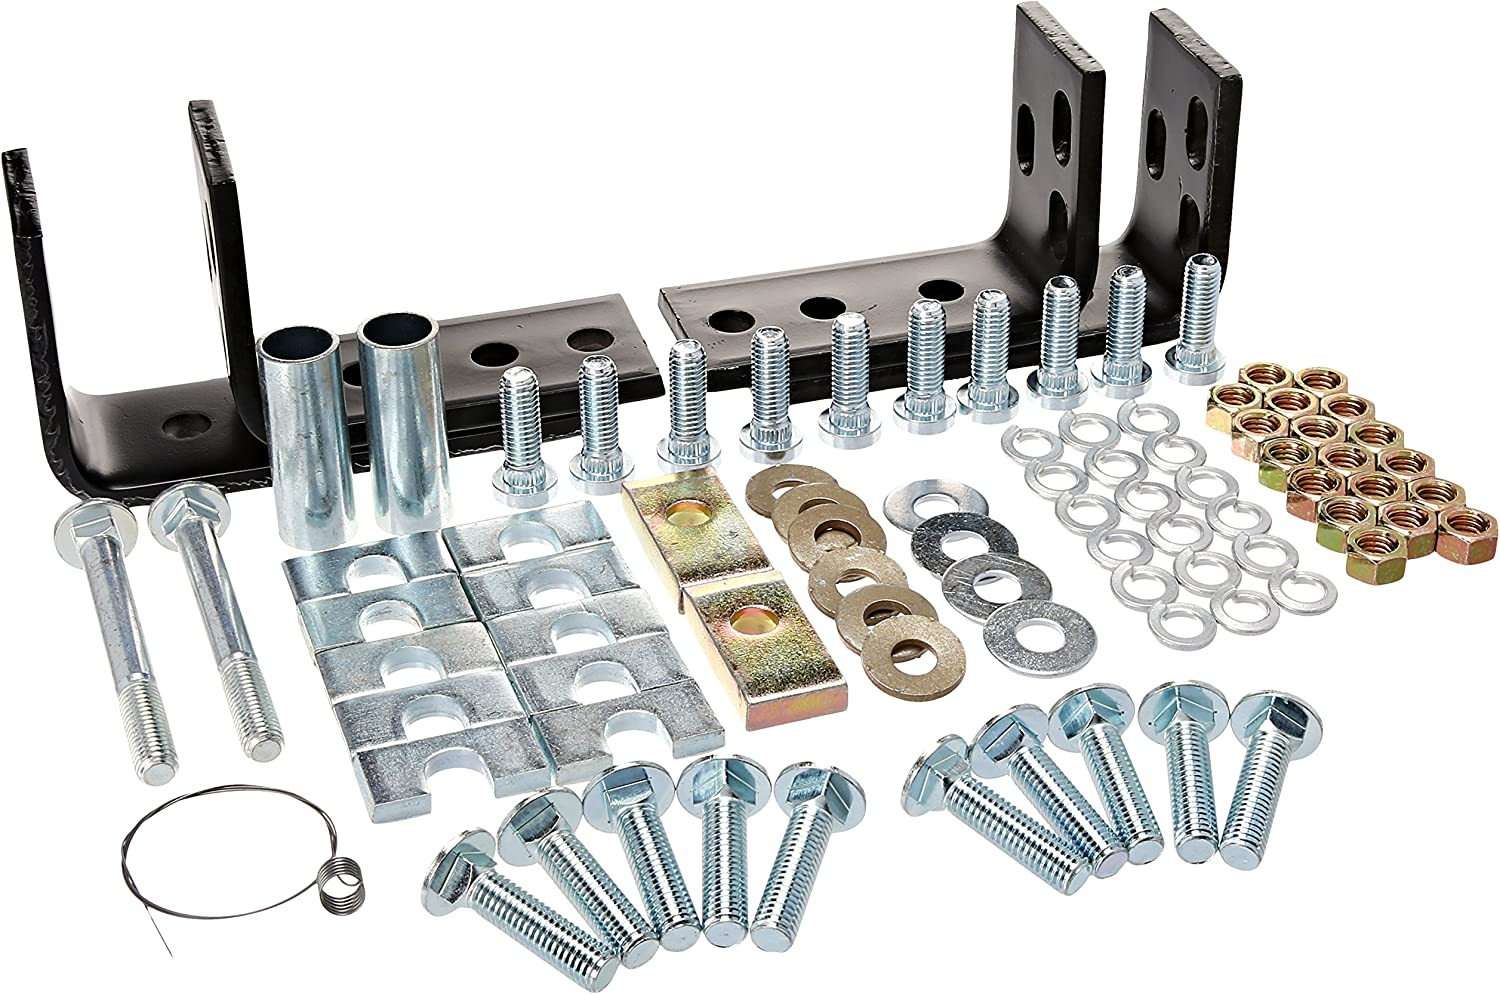 Reese 30439 Fifth Wheel Installation Kit for 30035 and 58058 (10-Bolt Design)